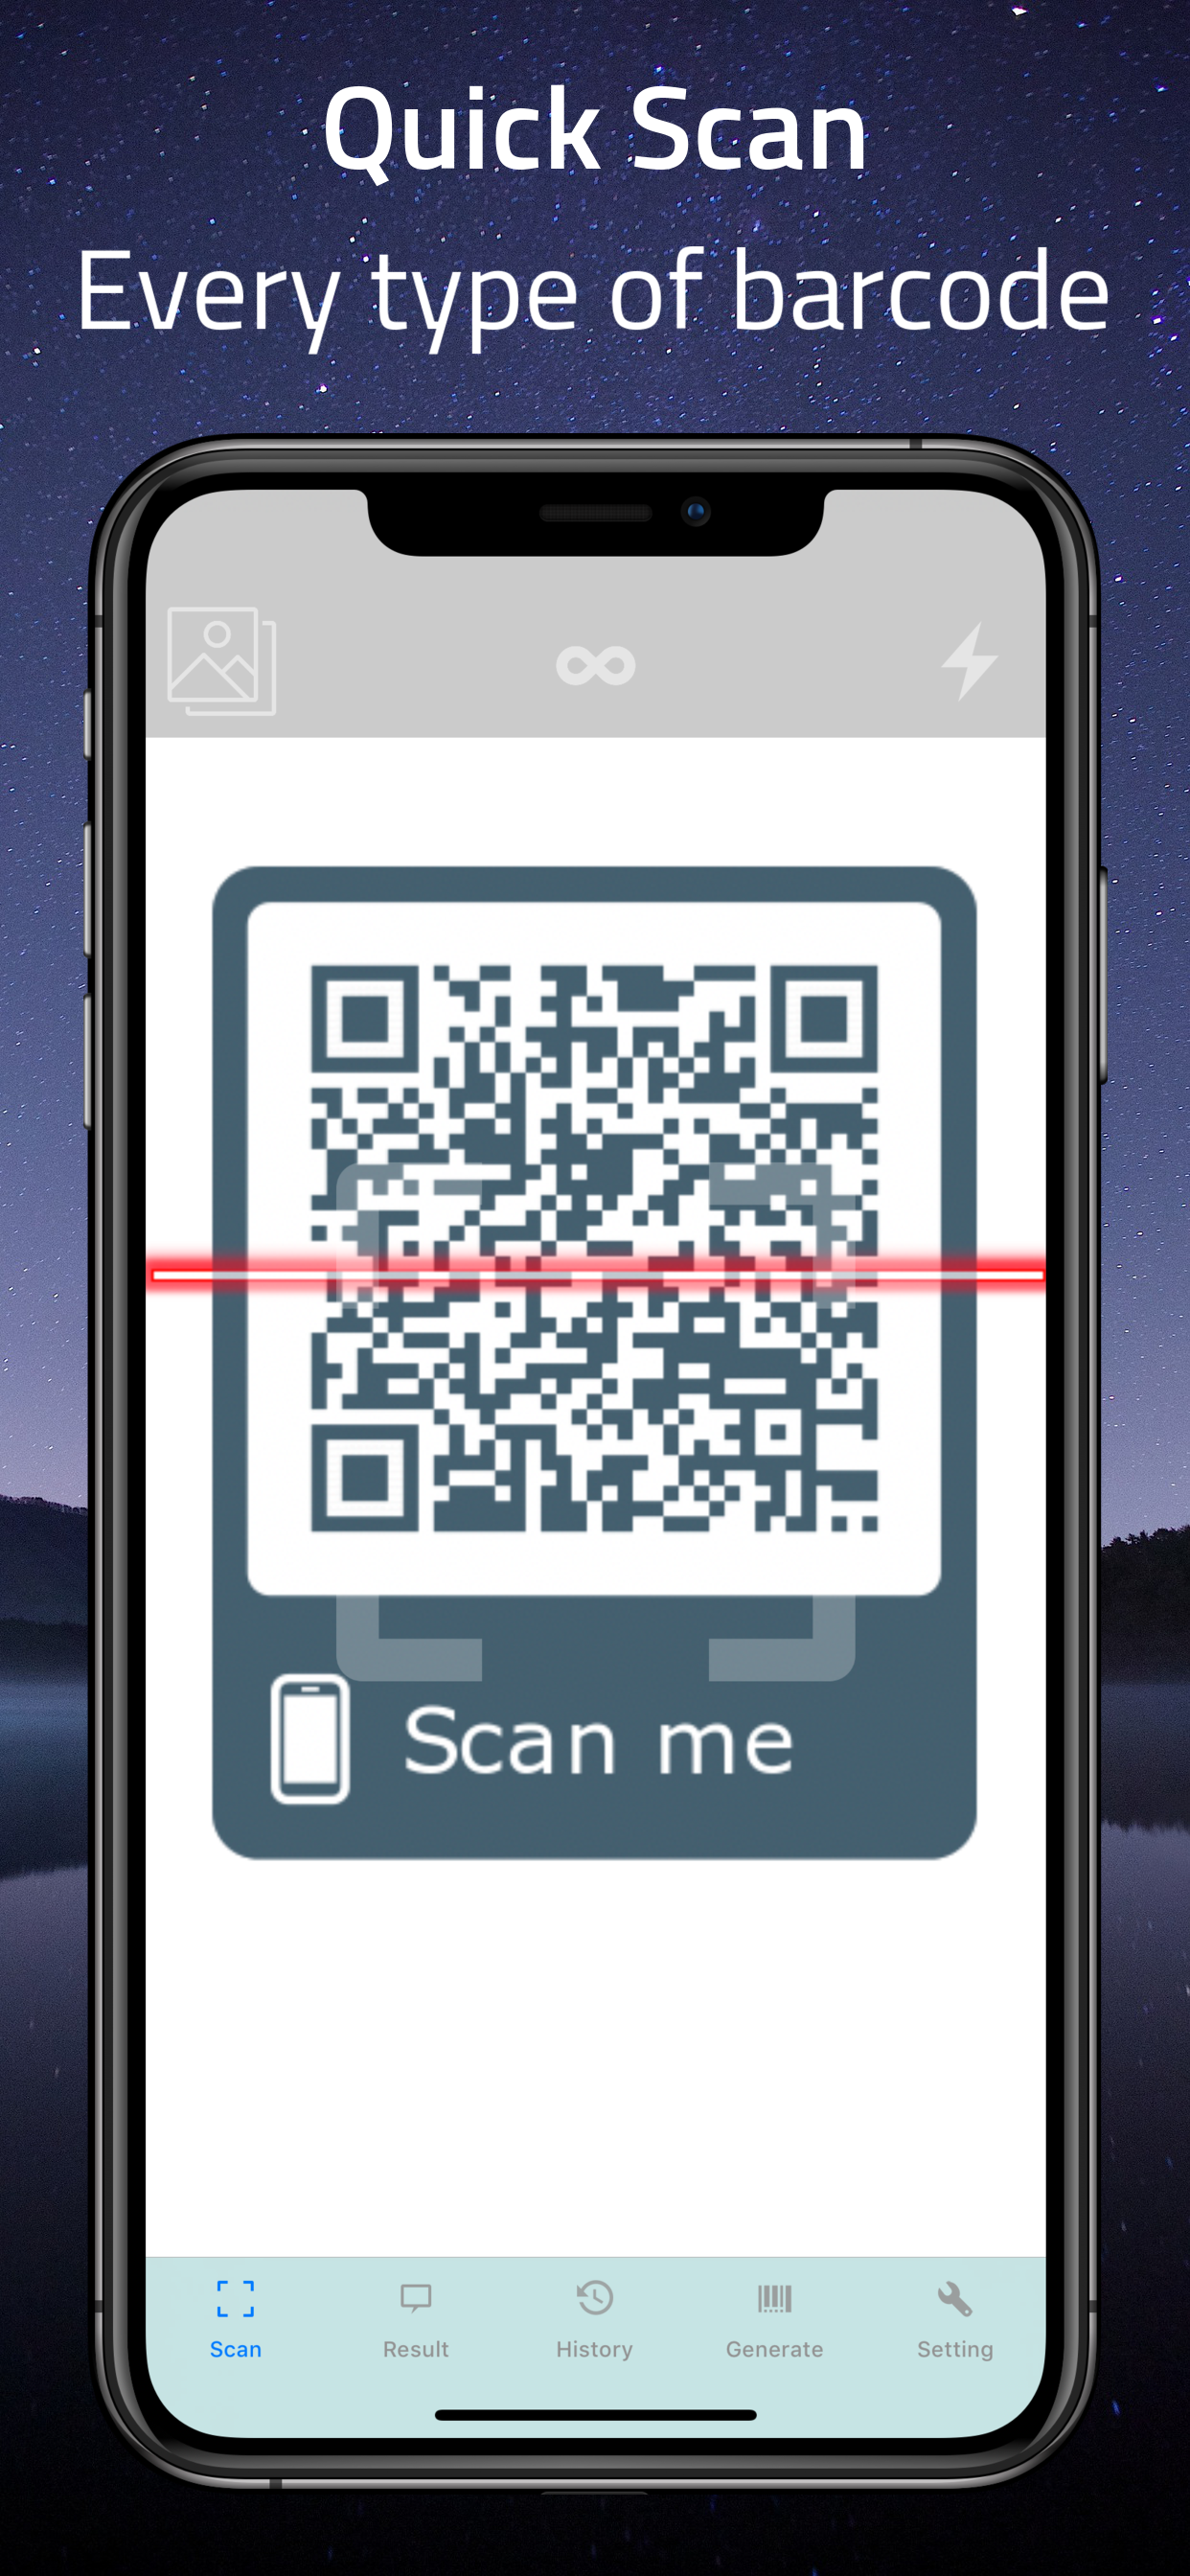 iPhone Xs Max-03Barcode - Quick_framed.png